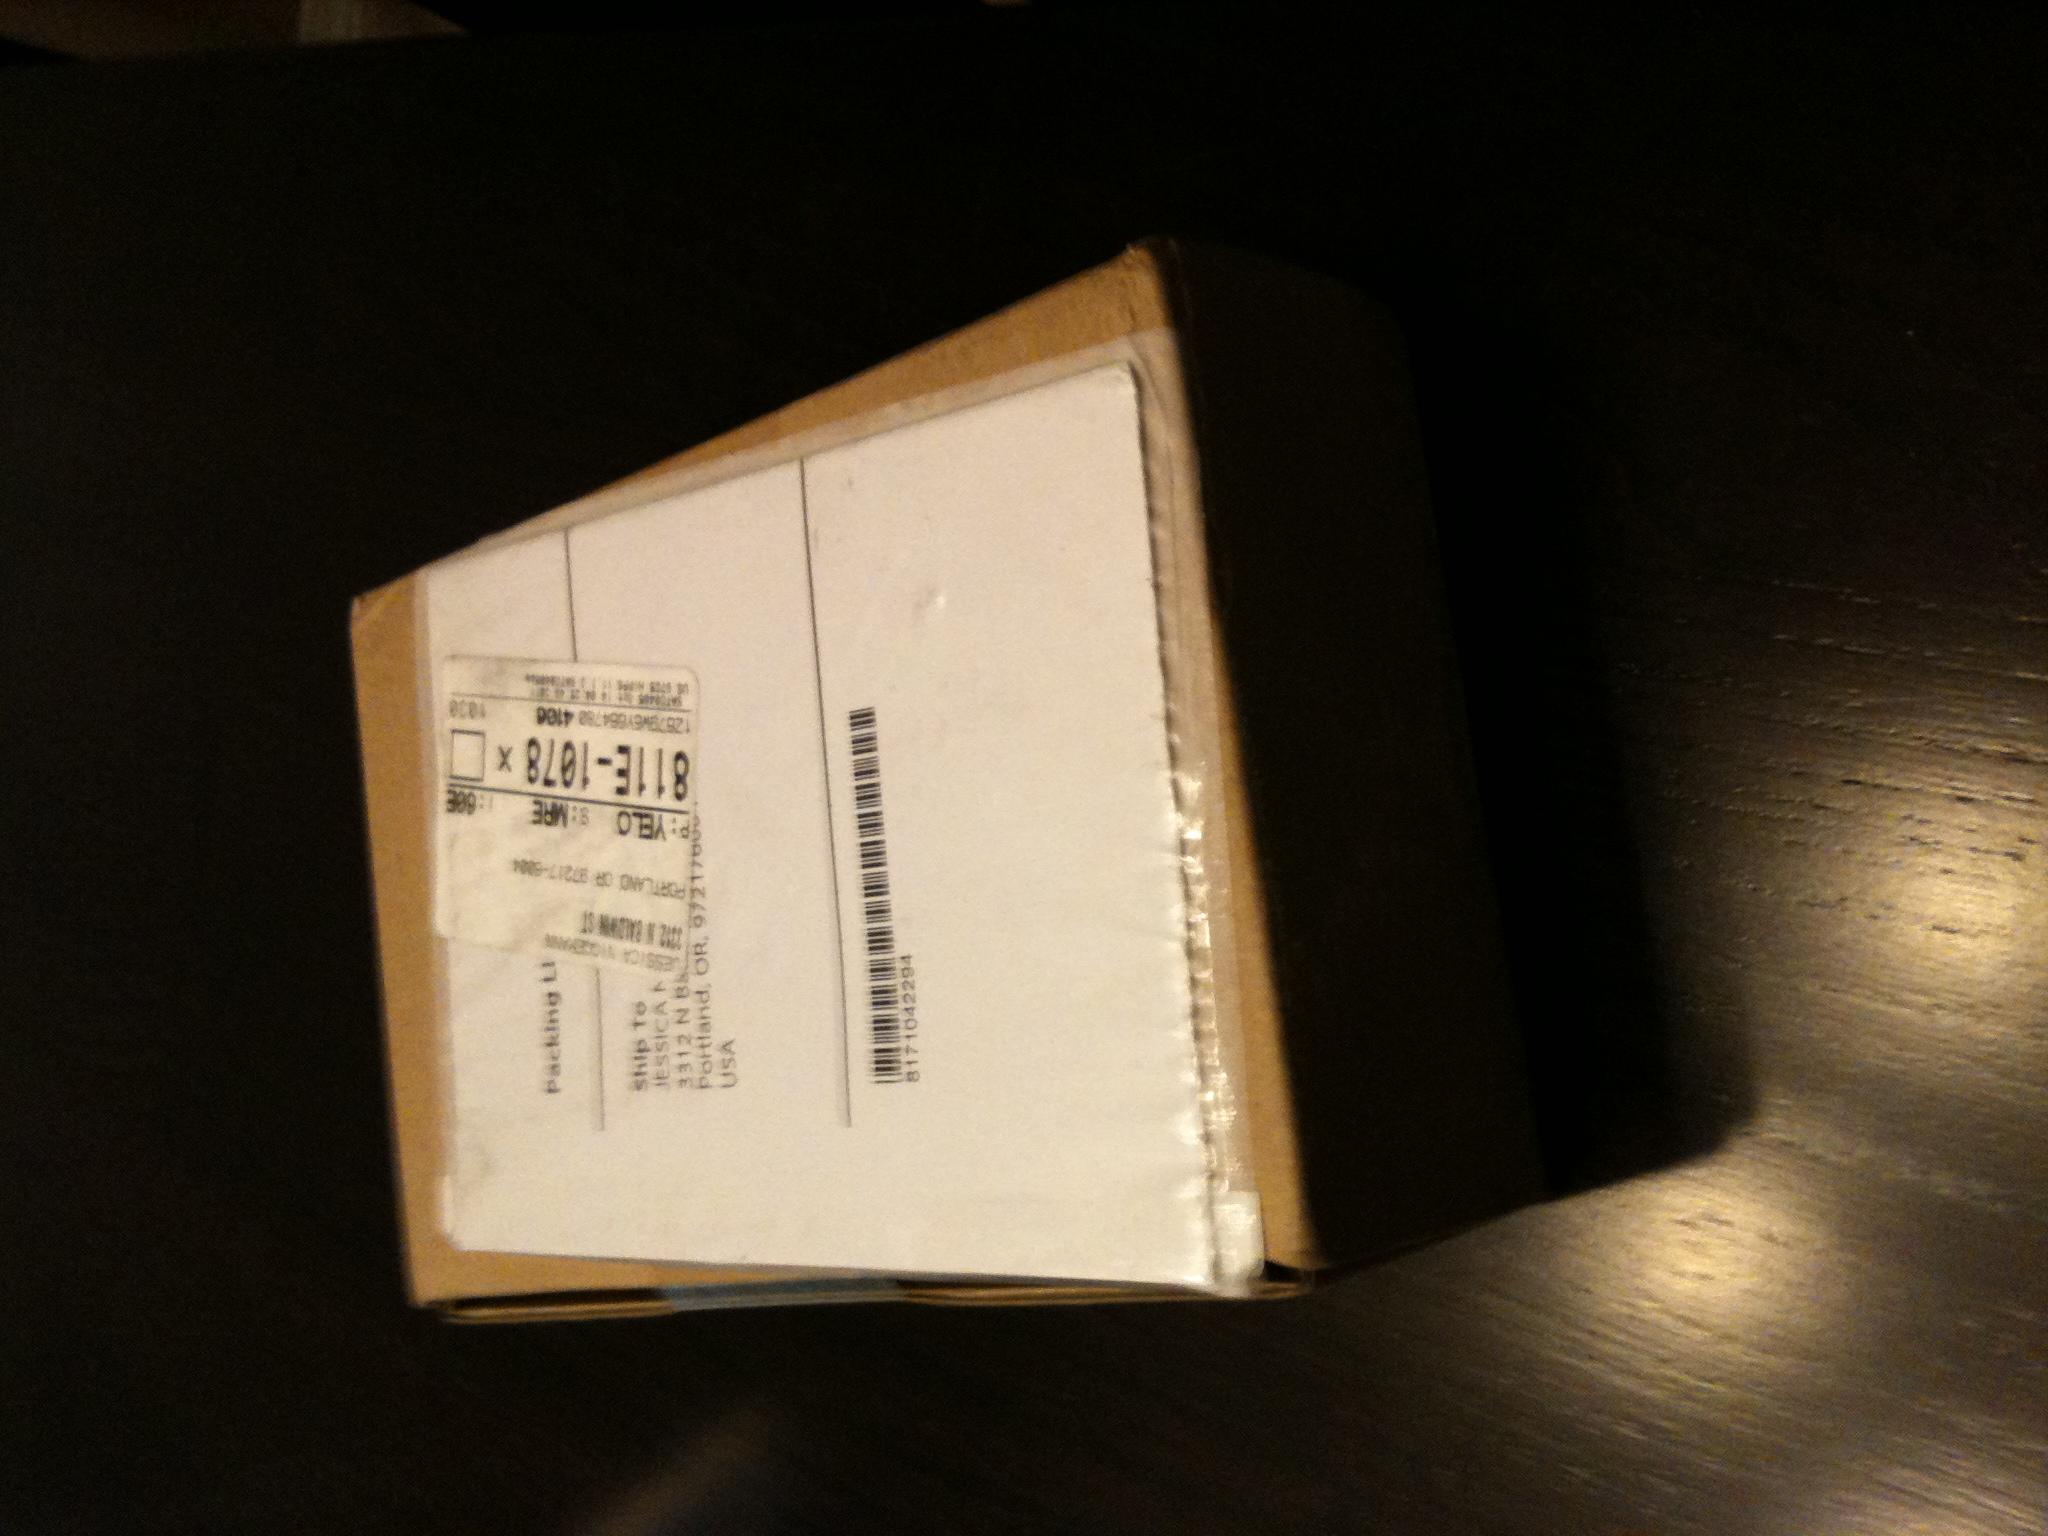 iPhone 4S in the package